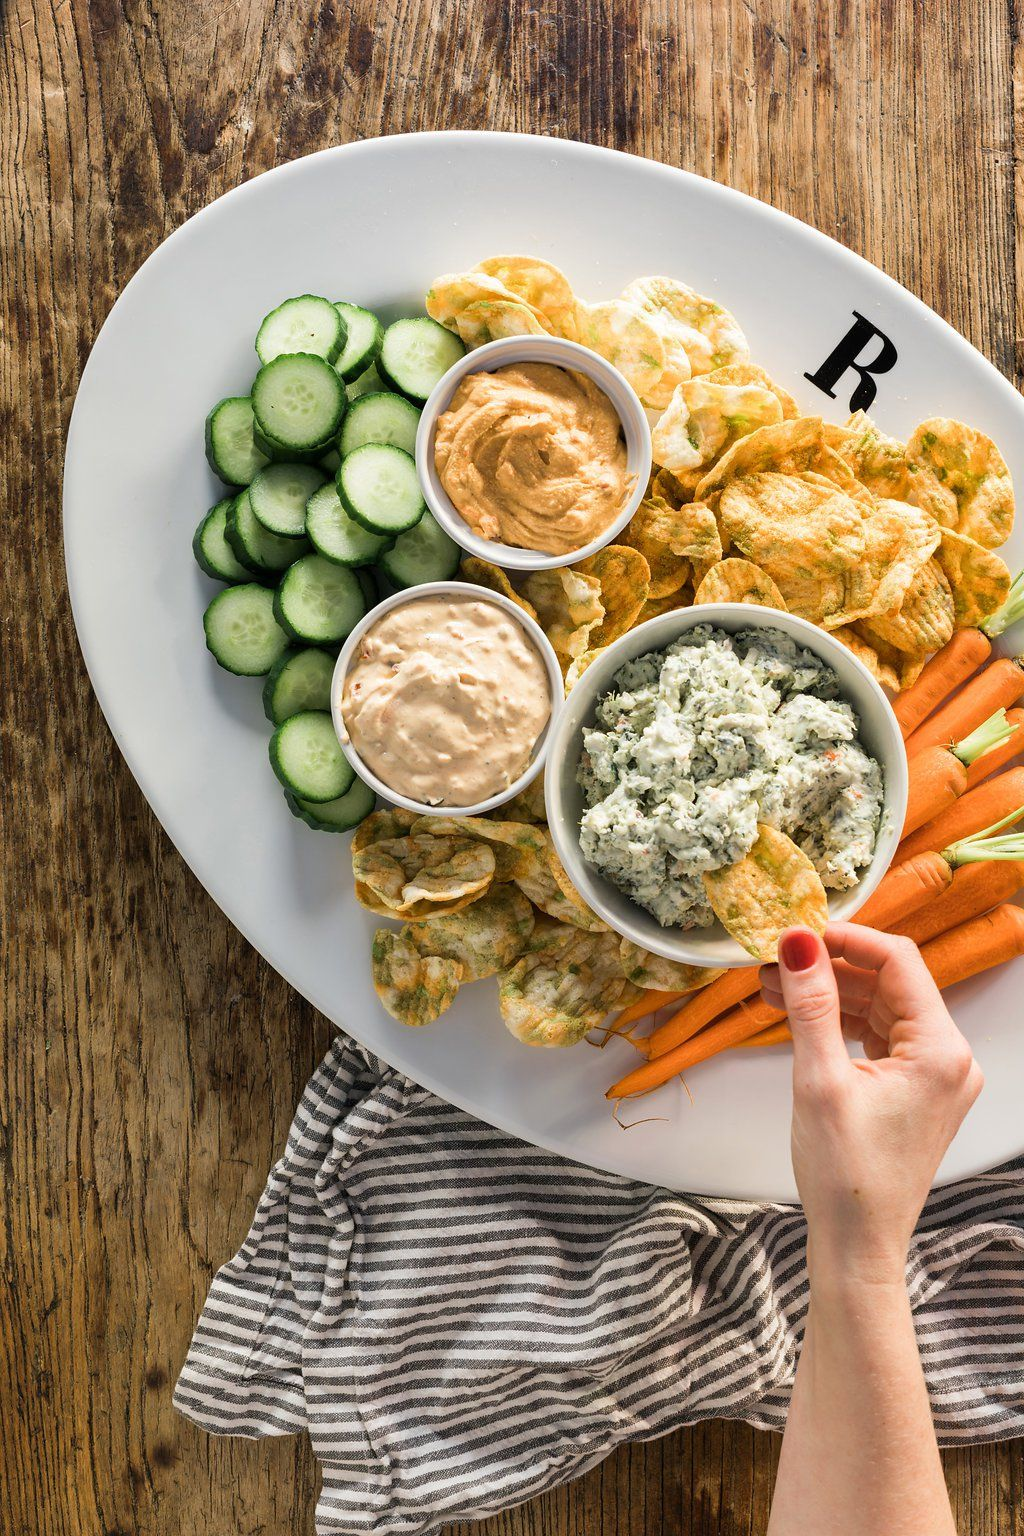 Making Smarter Snacking Choices